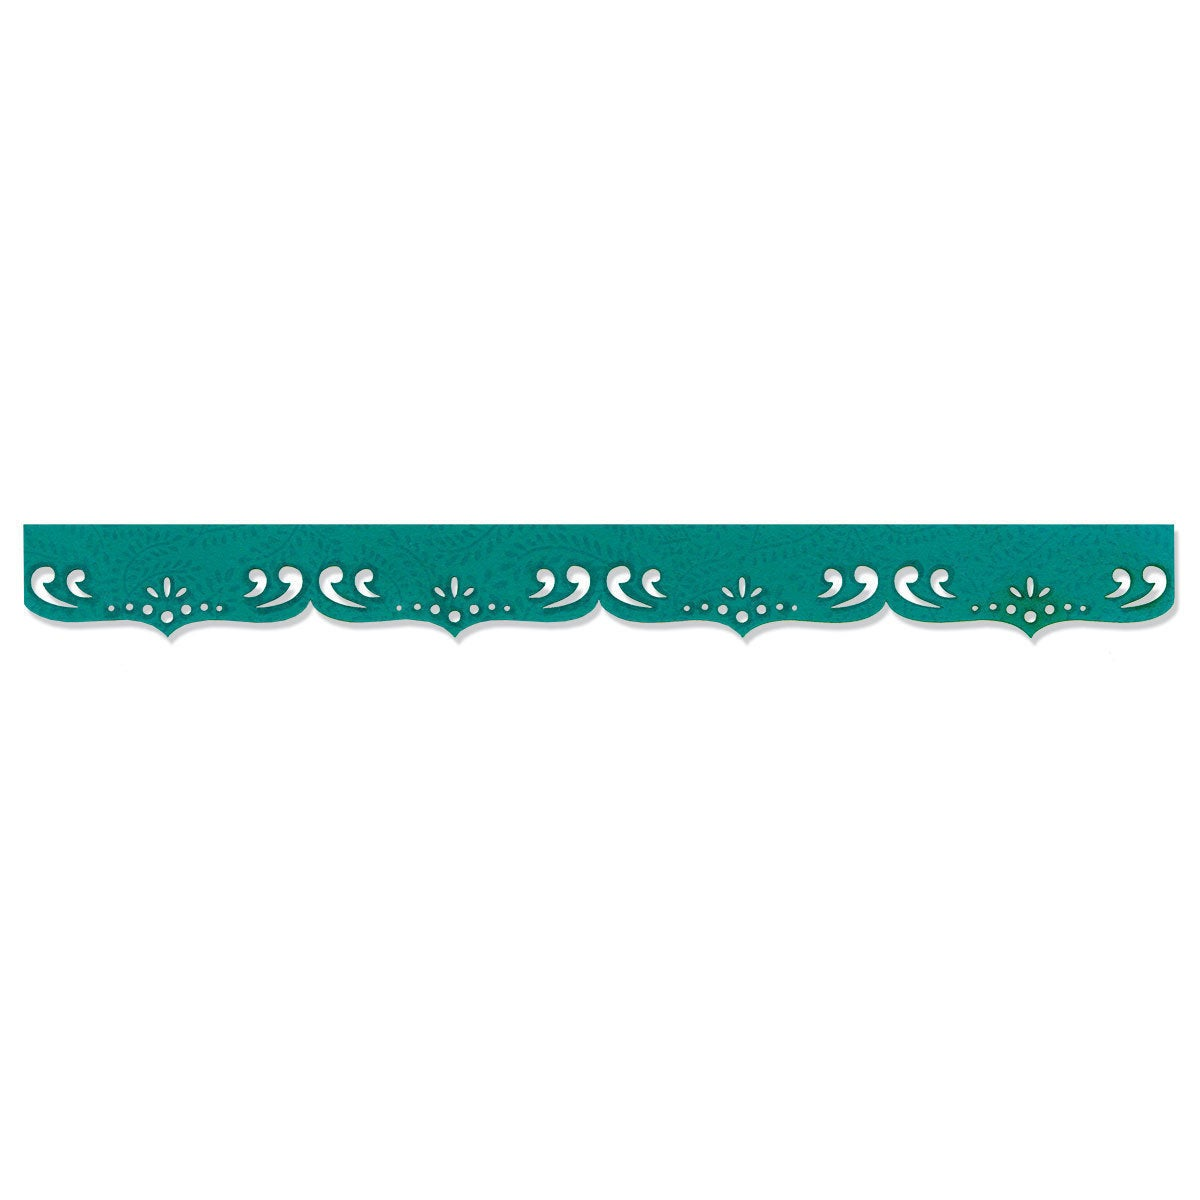 Sizzix Sizzlits Fancy Scallops Decorative Strip Die by De...